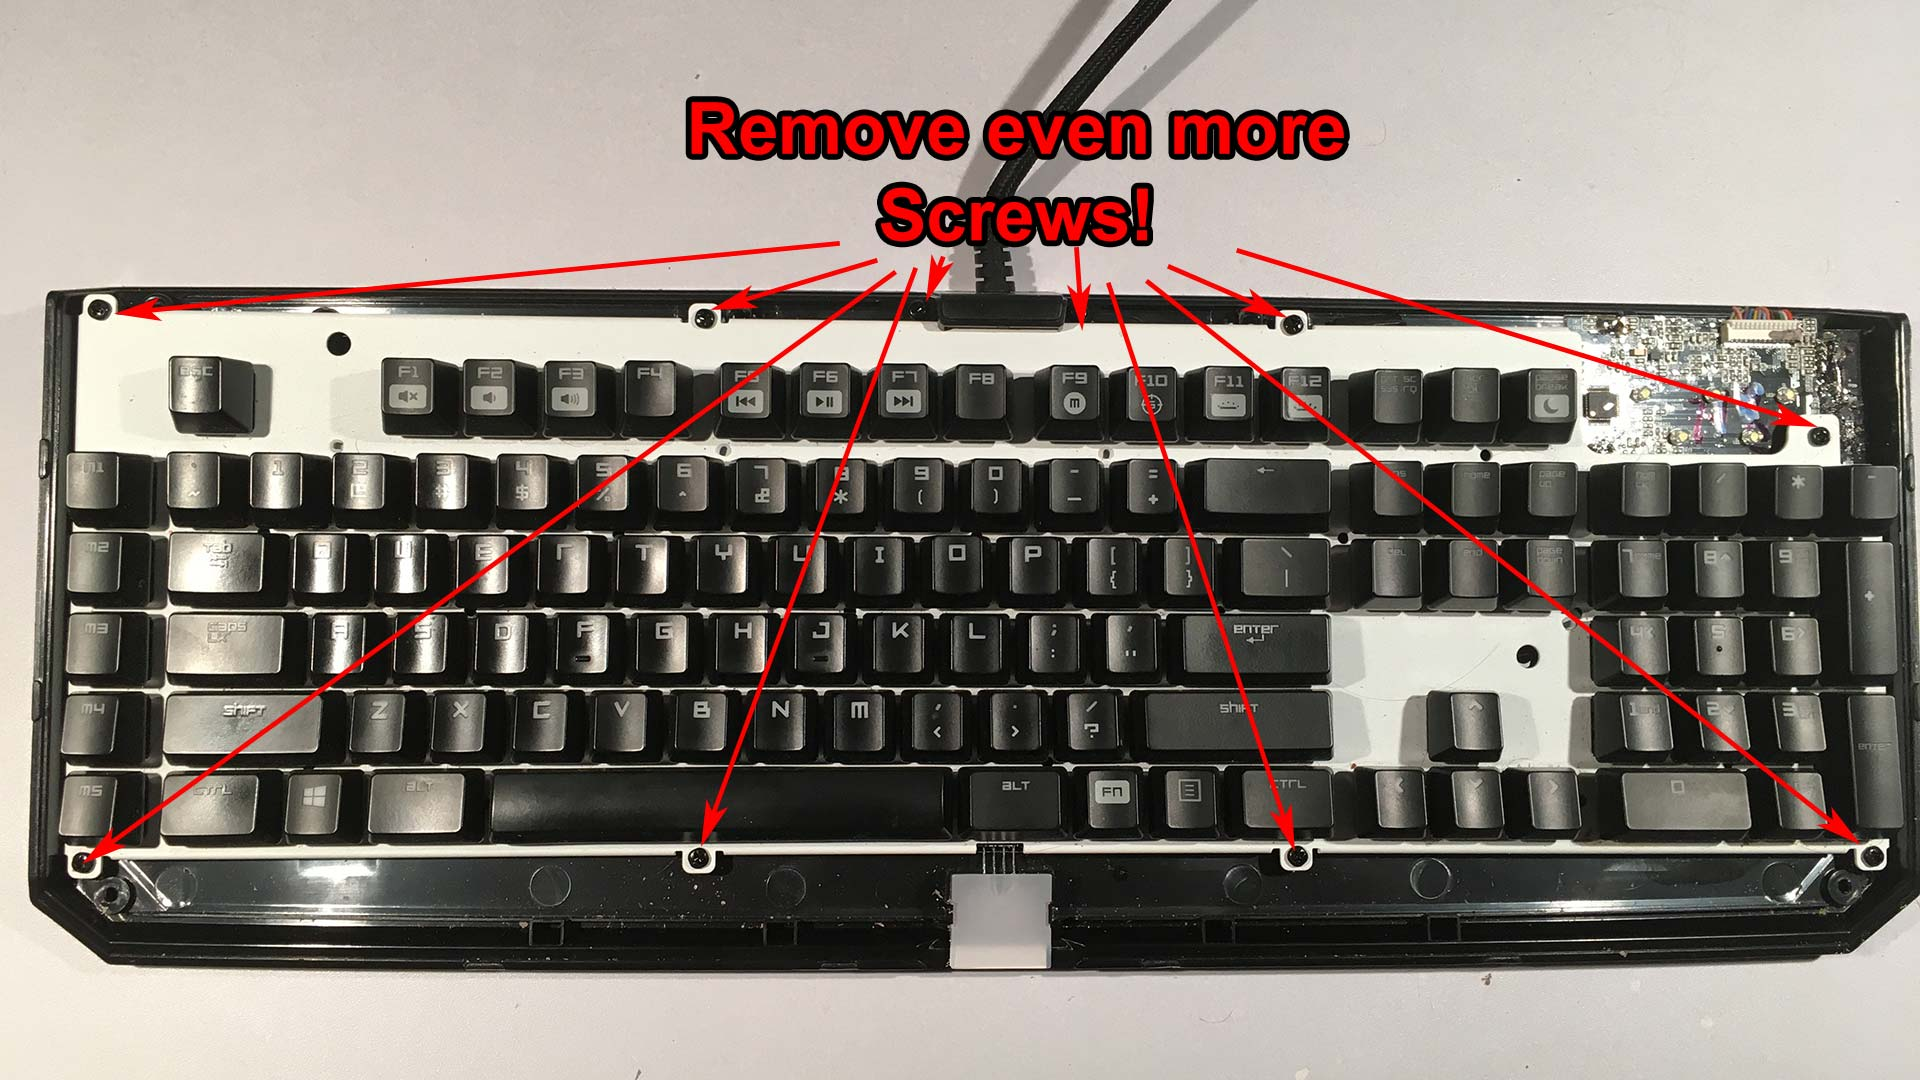 Razer Blackwidow 2014 dissassembly - removing screws for lower housing.